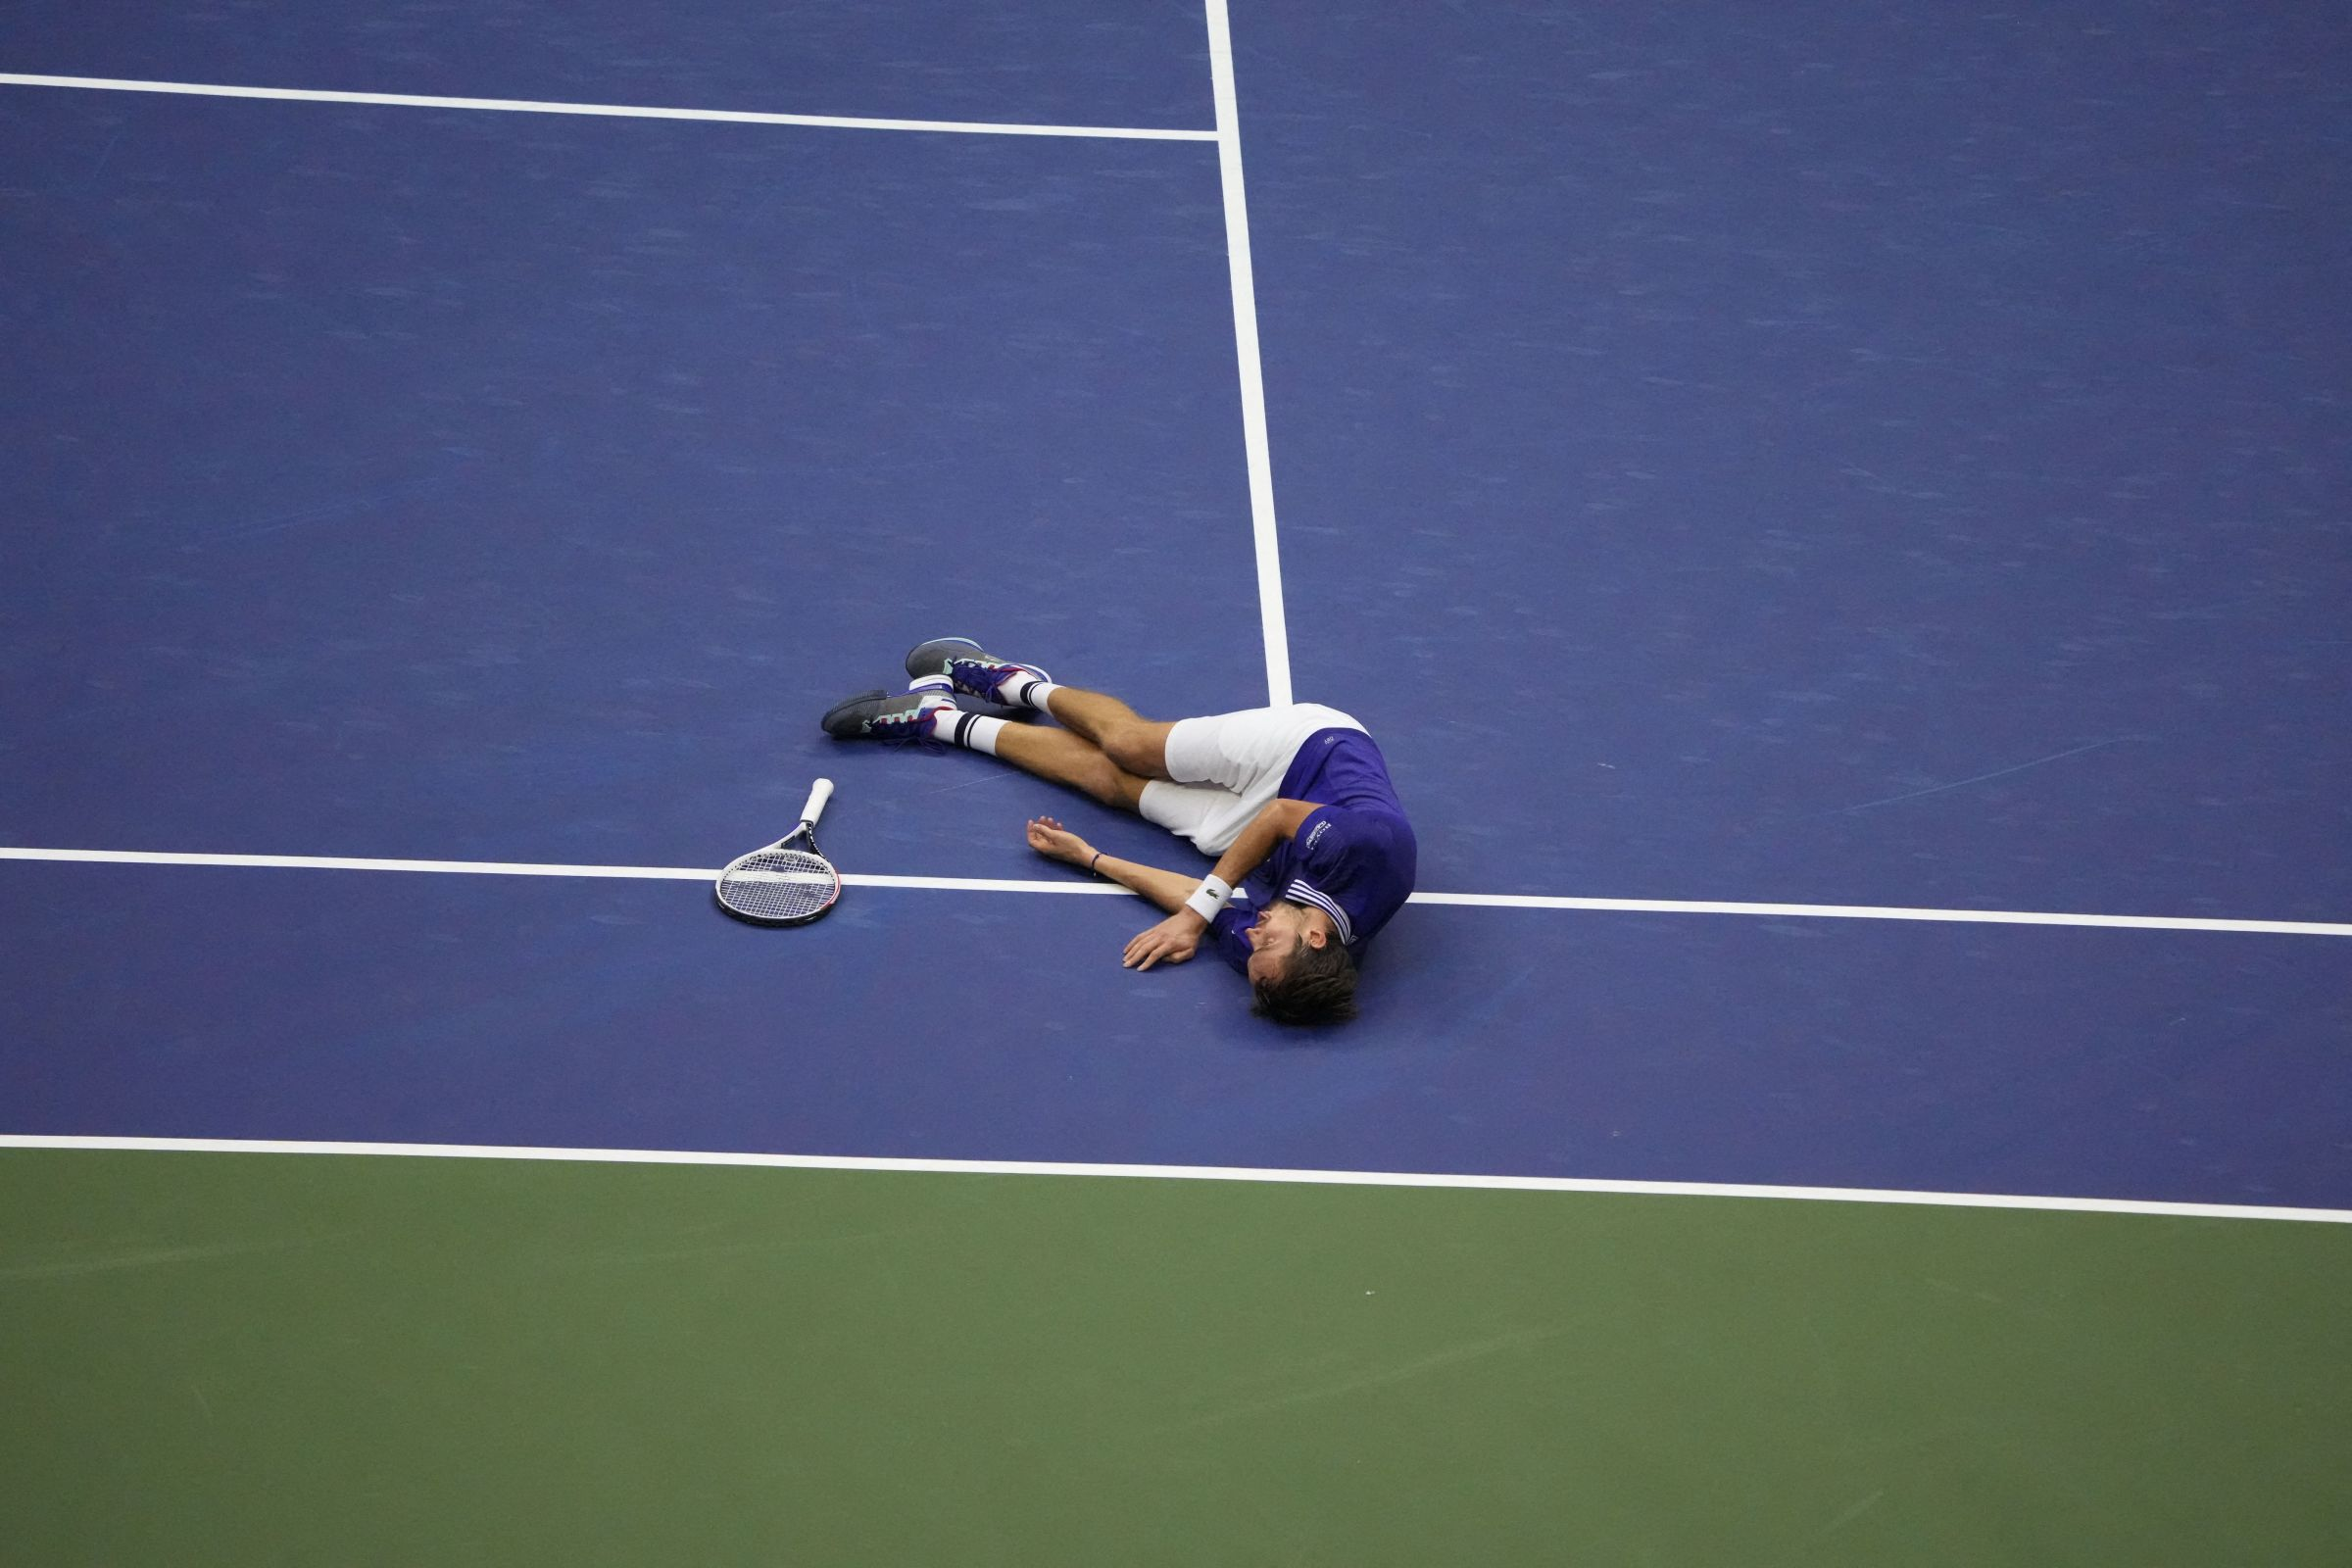 Daniil Medvedev collapses on the court after winning the 2021 U.S. Open.